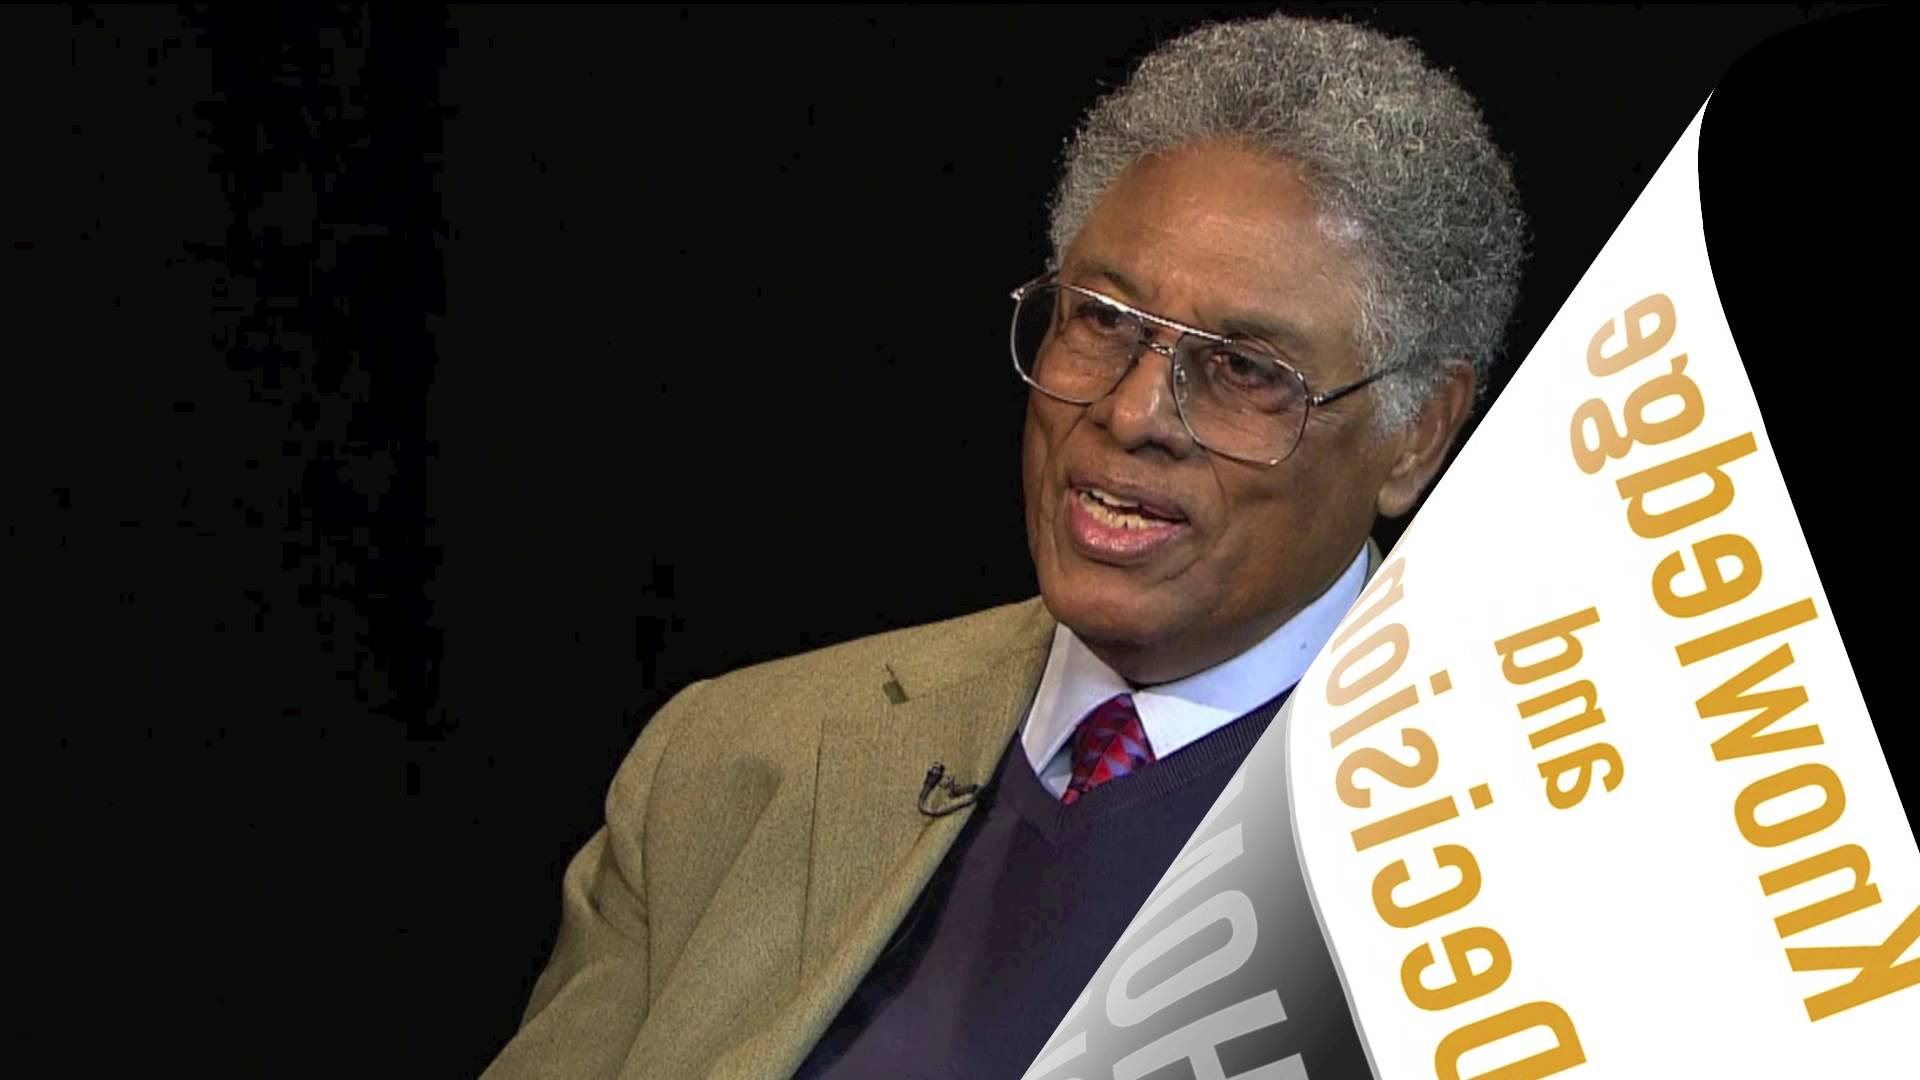 Article By Thomas Sowell